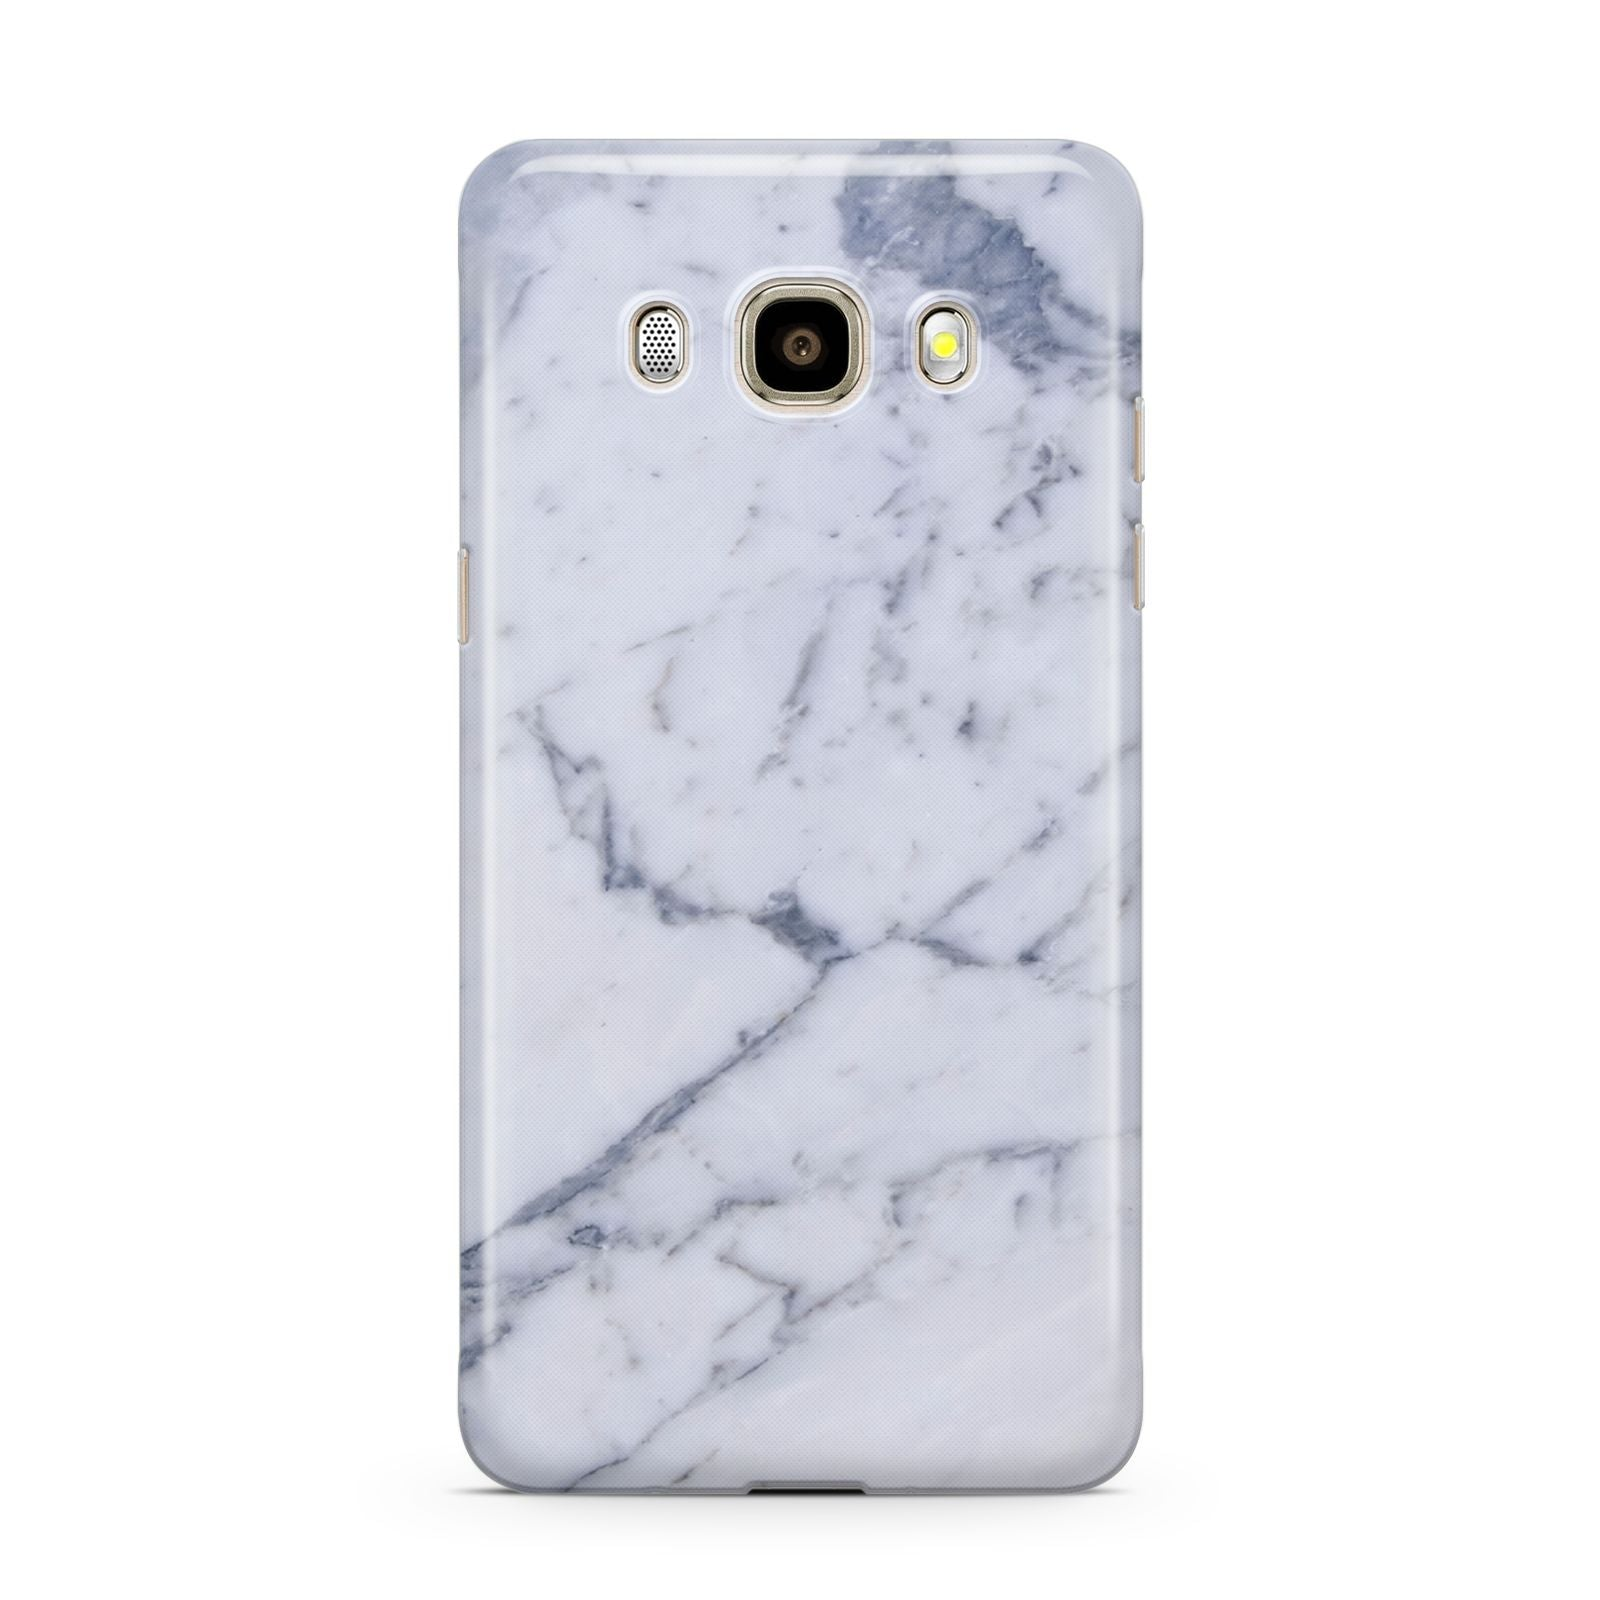 Faux Marble Grey White Samsung Galaxy J7 2016 Case on gold phone